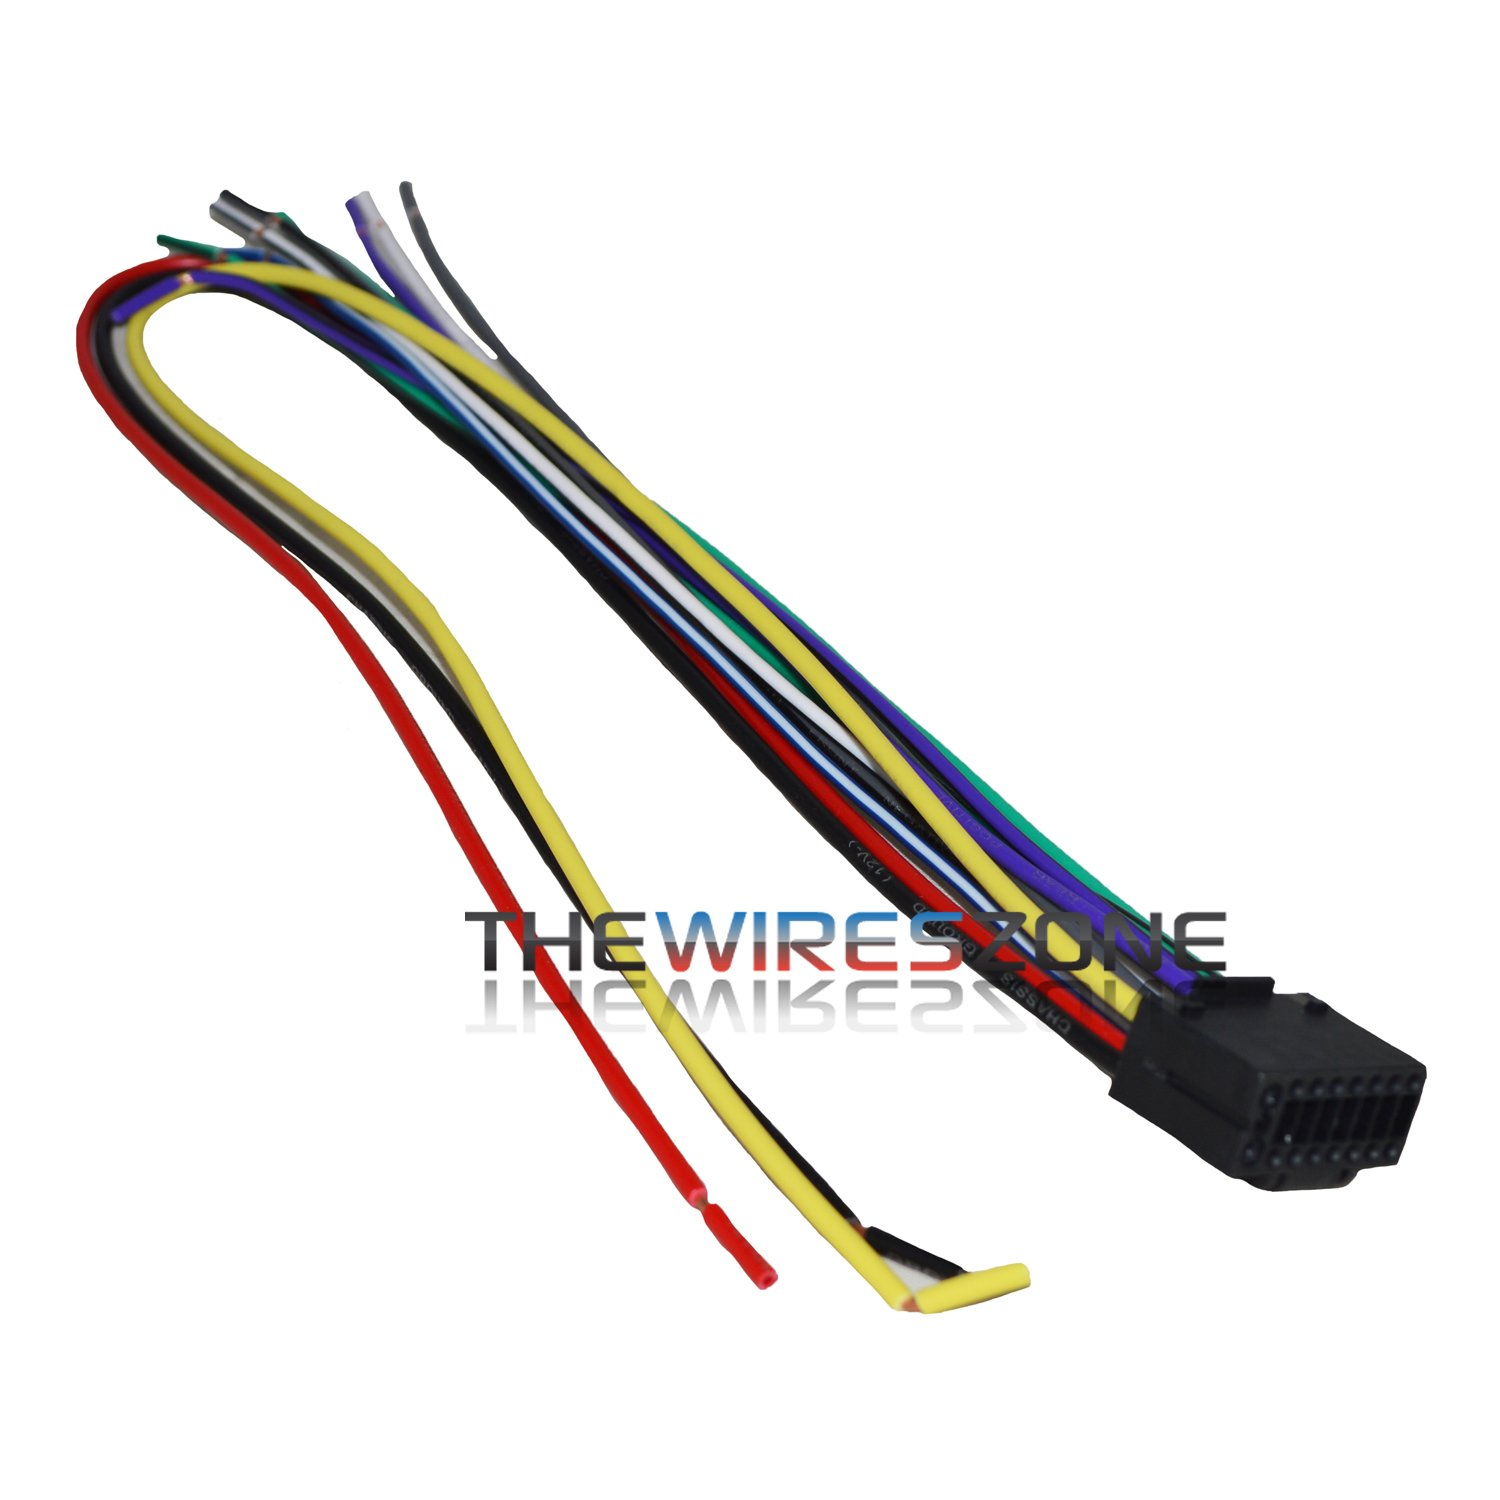 16 Pin Wire Harness For Select Kenwood Car Radio Cd Kdc X591 Diagram Player Stereo Receiver Electronics